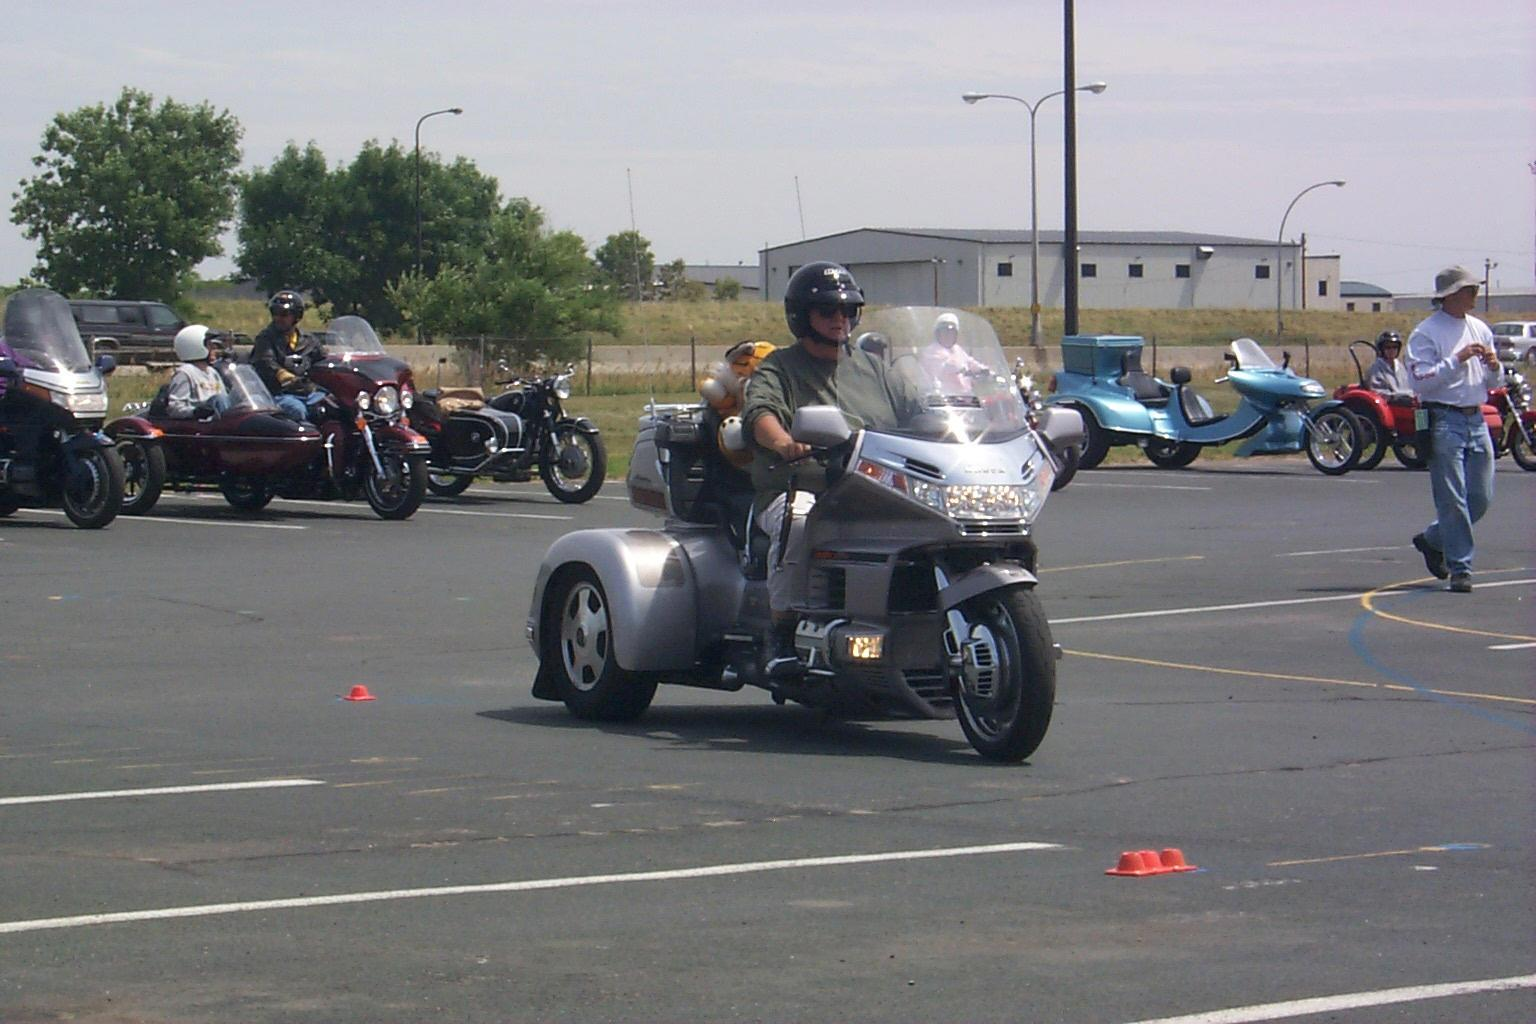 Training for trikes and sidecar rigs image